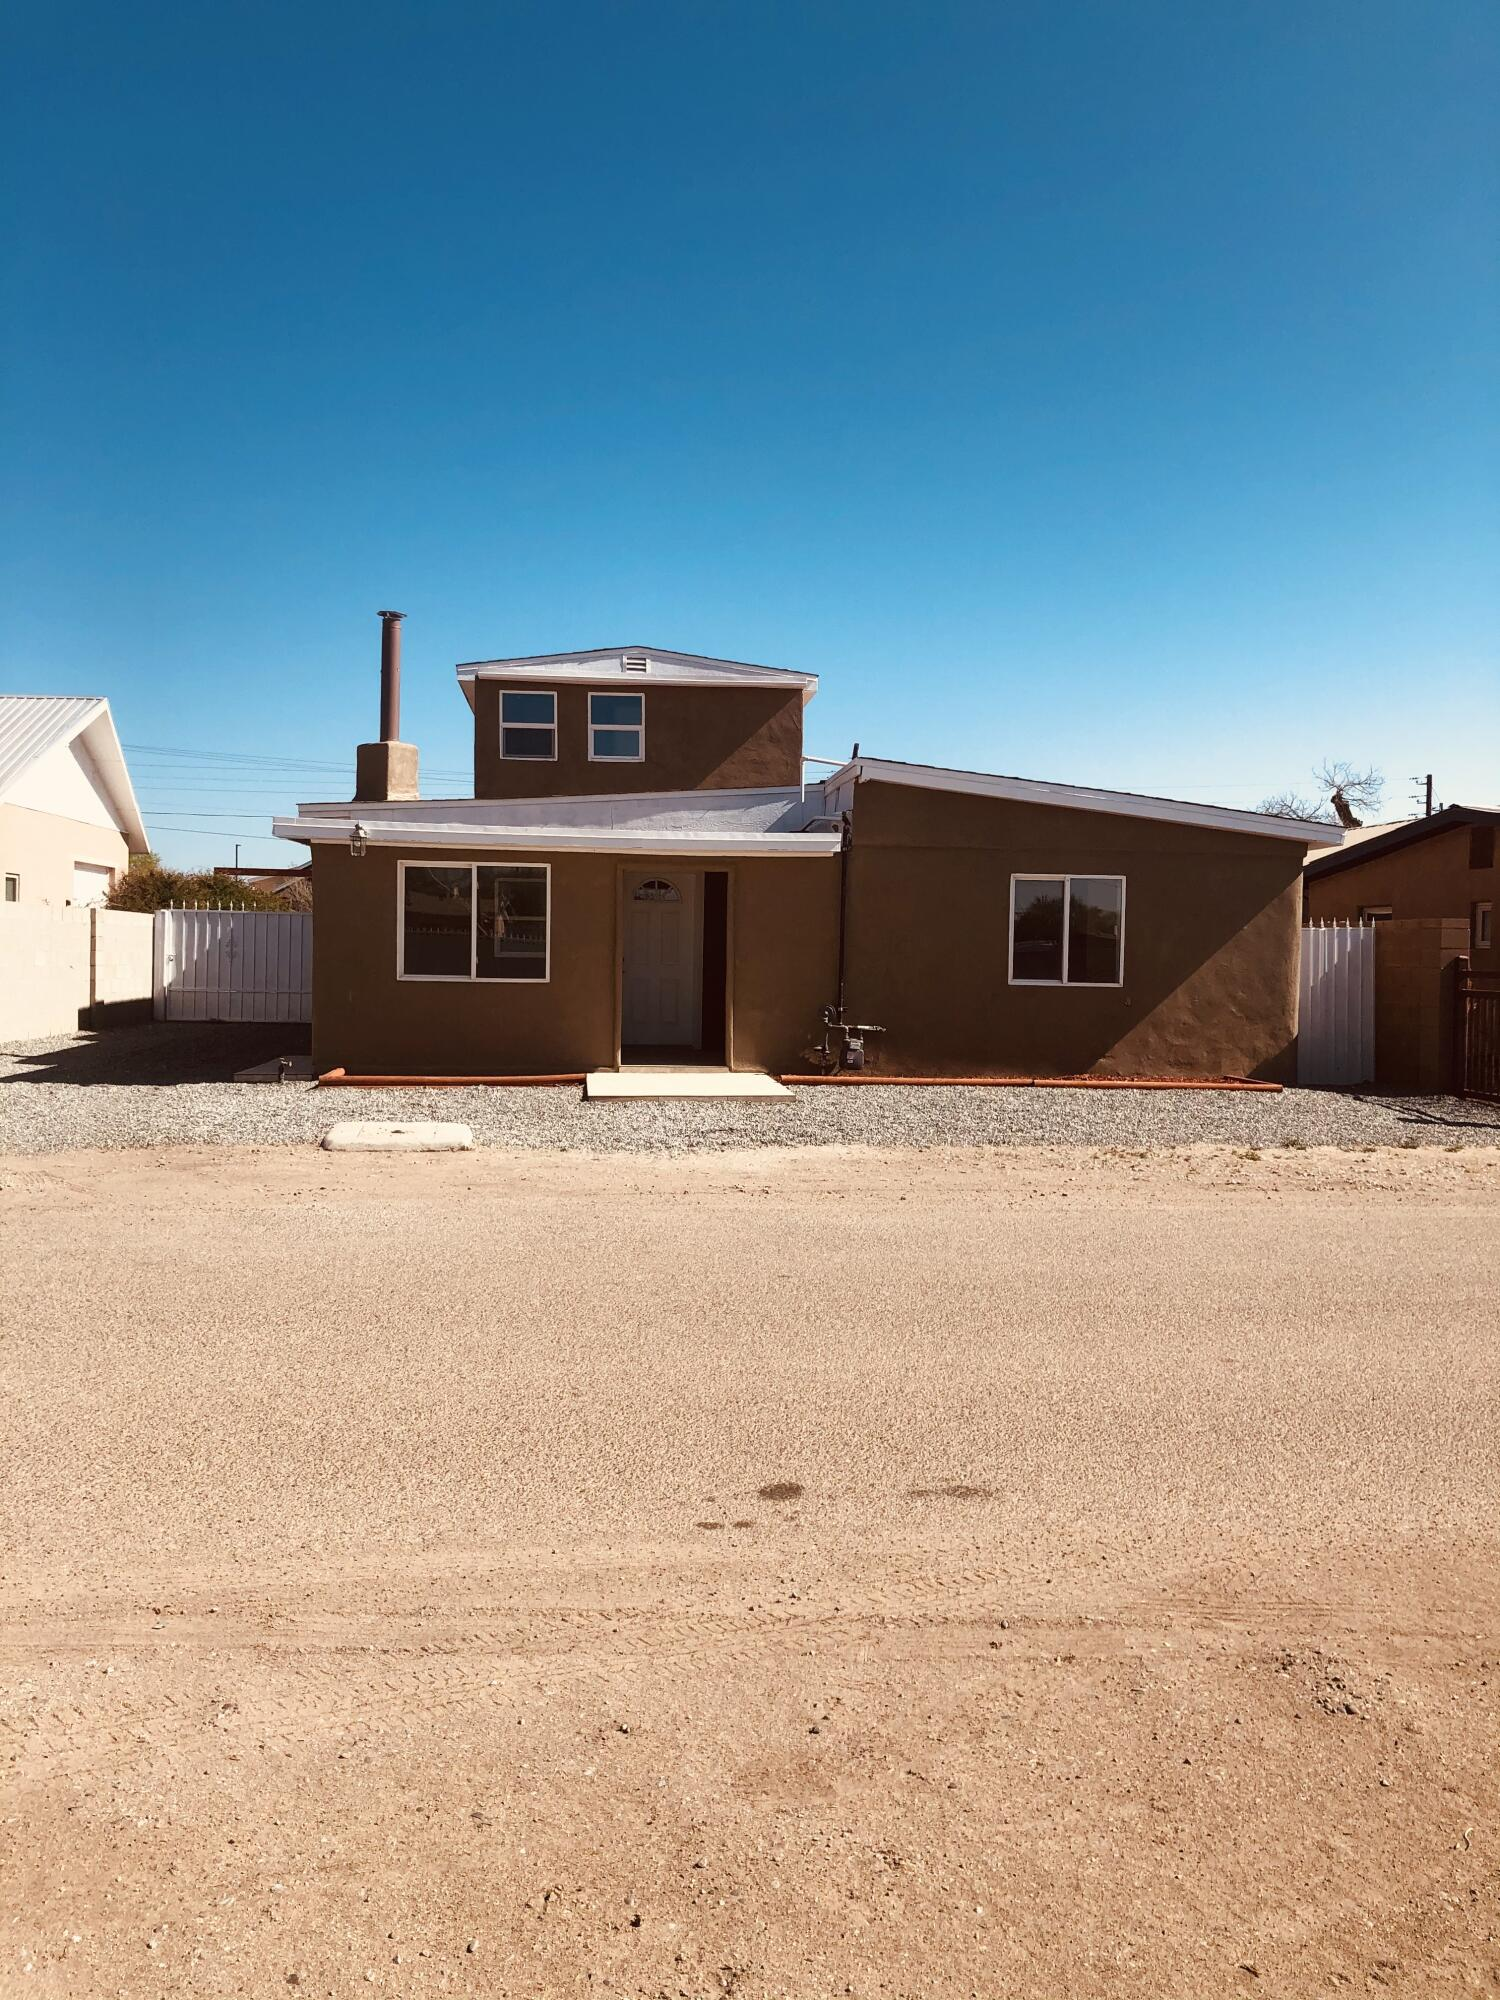 Newly refreshed north valley home with backyard access. Come take a look before its gone!